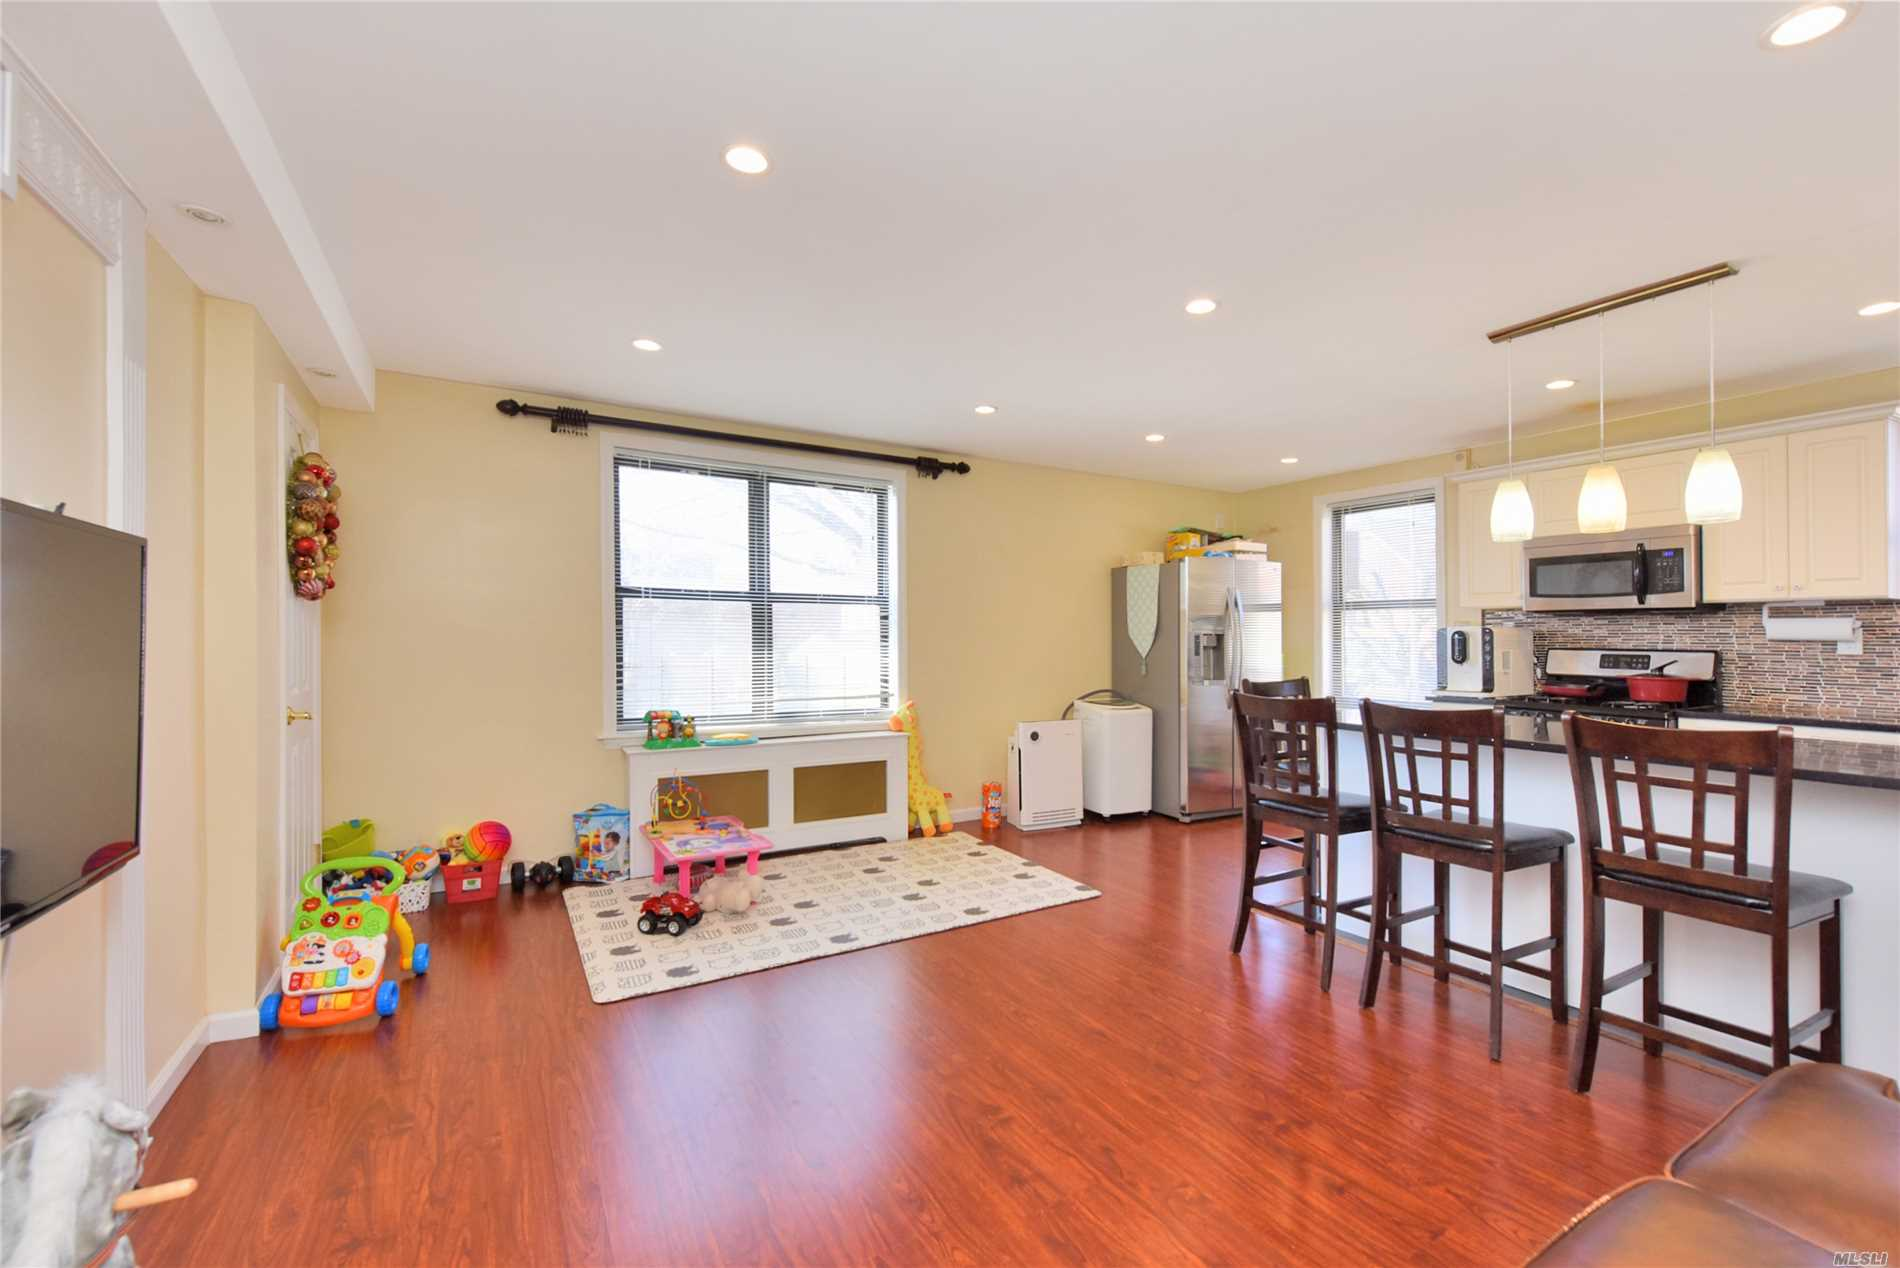 Spacious and modern two bedroom, one bath unit on the second floor. Recently renovated kitchen and bathroom including all new appliances and fixtures. Lots of closets and storage space!